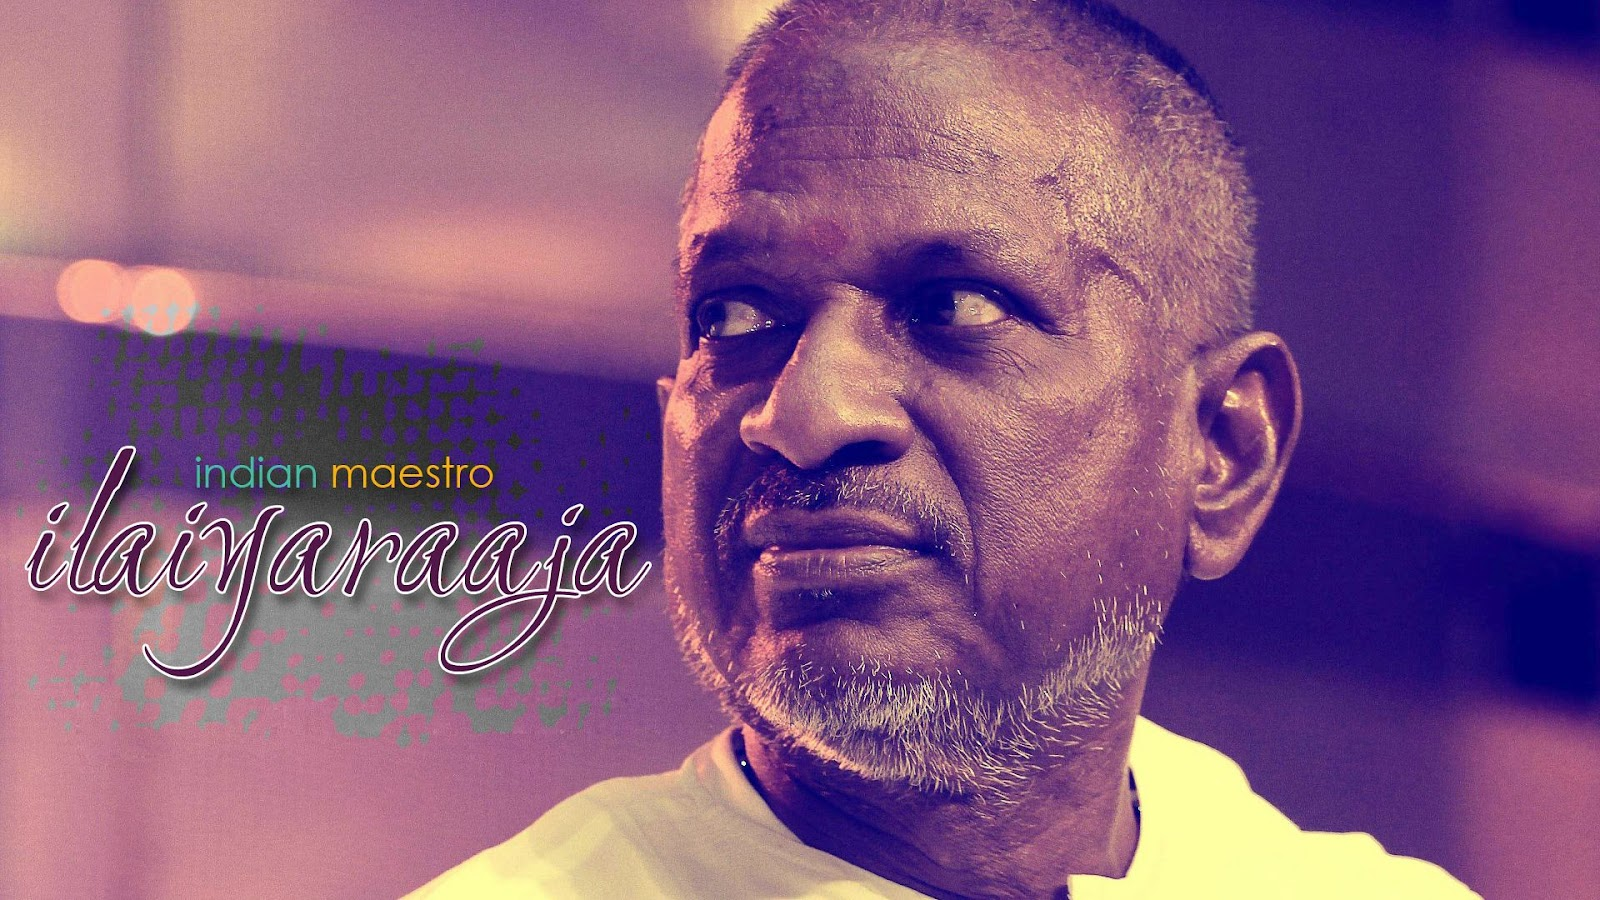 Christian Wallpapers Hd Free Download Download Ilayaraja Wallpapers Free Download Gallery